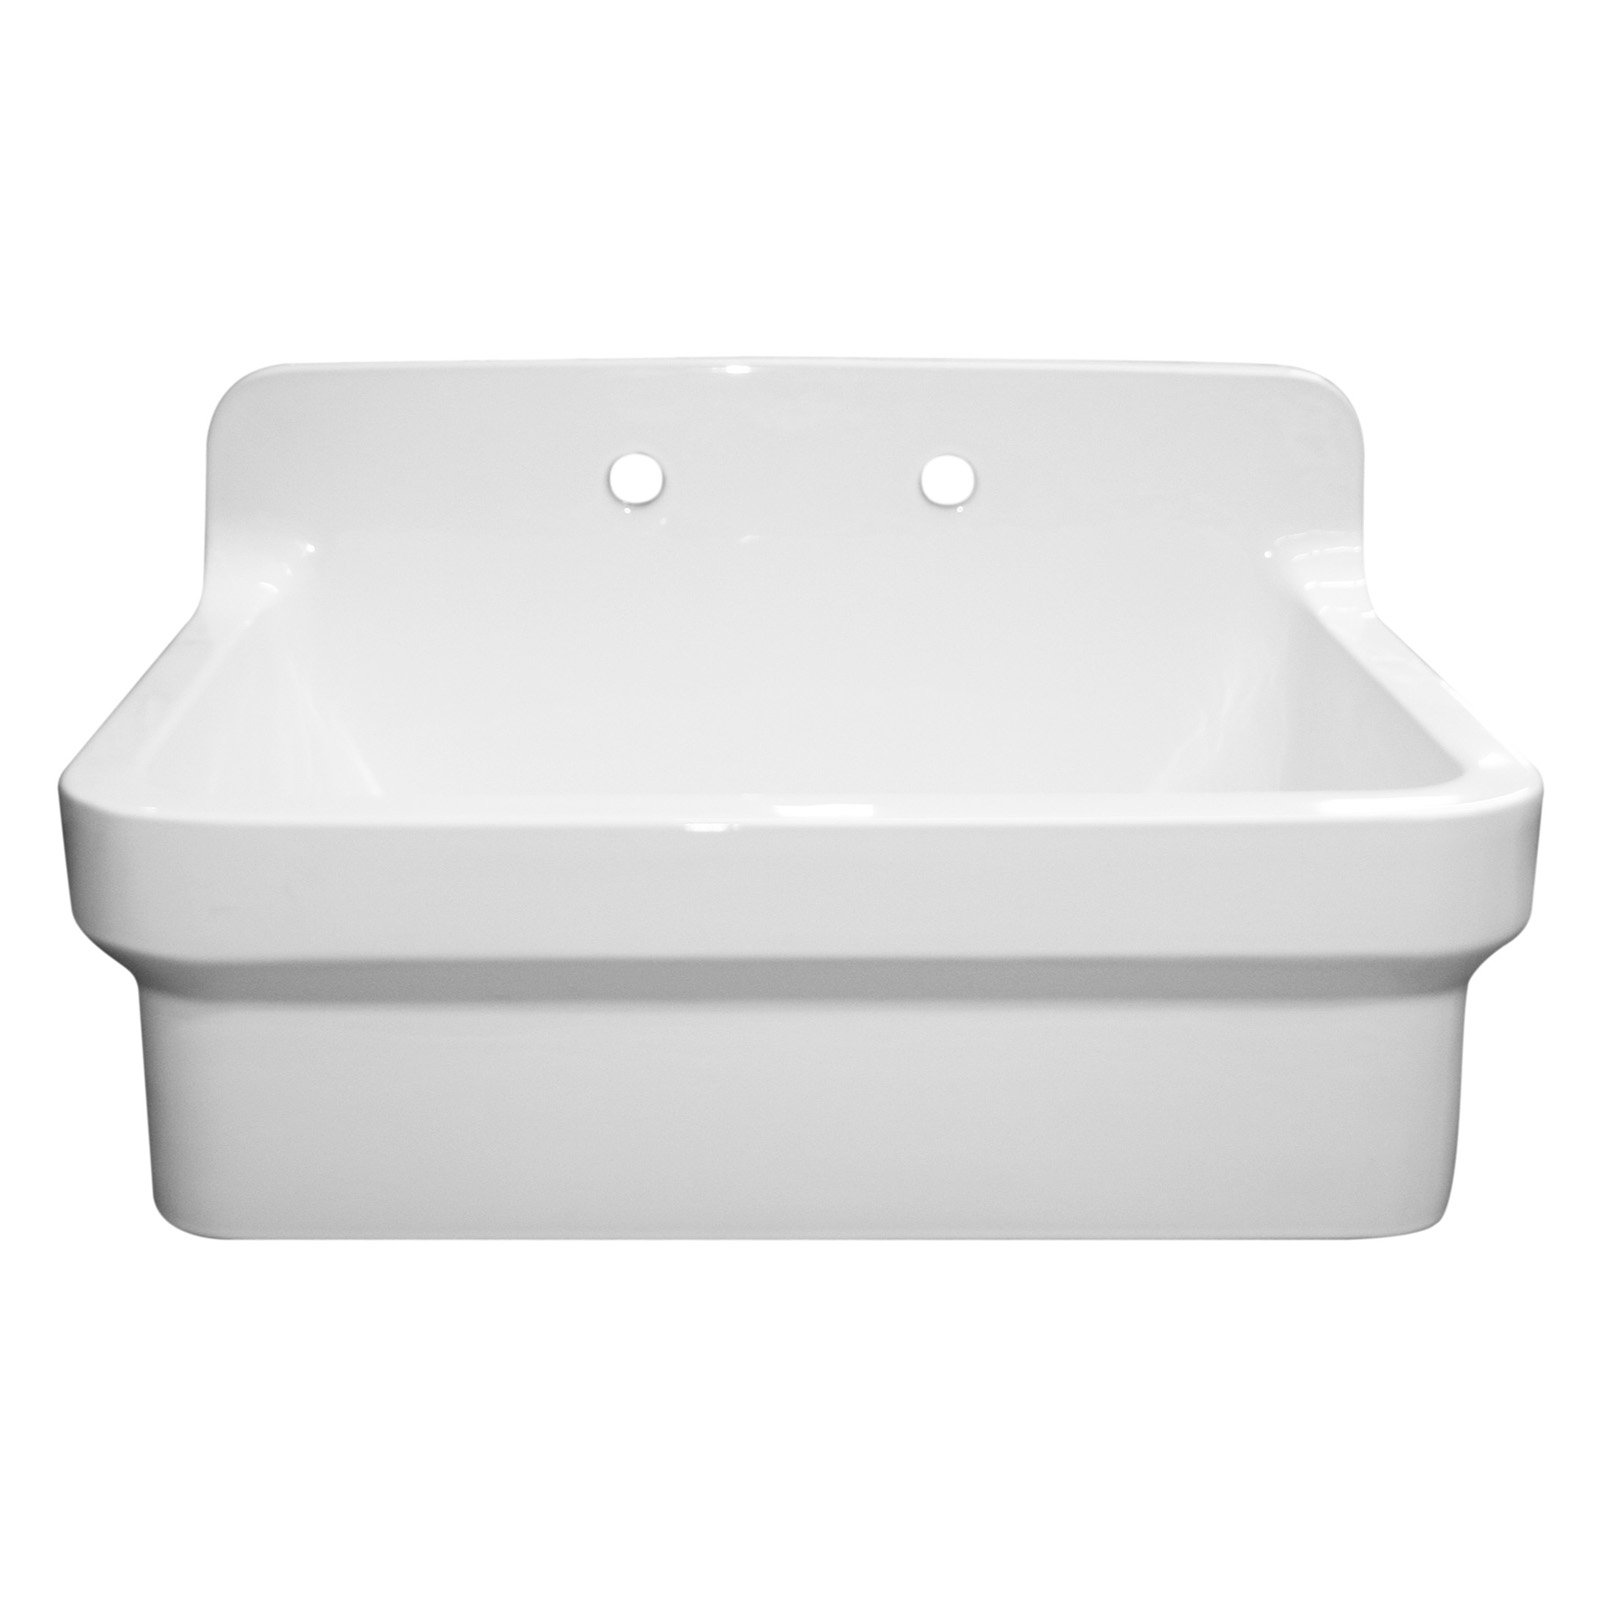 Whitehaus WHCW3022 8 Countryhaus Vitreous China Wall Mount Or Drop In  Utility Sink